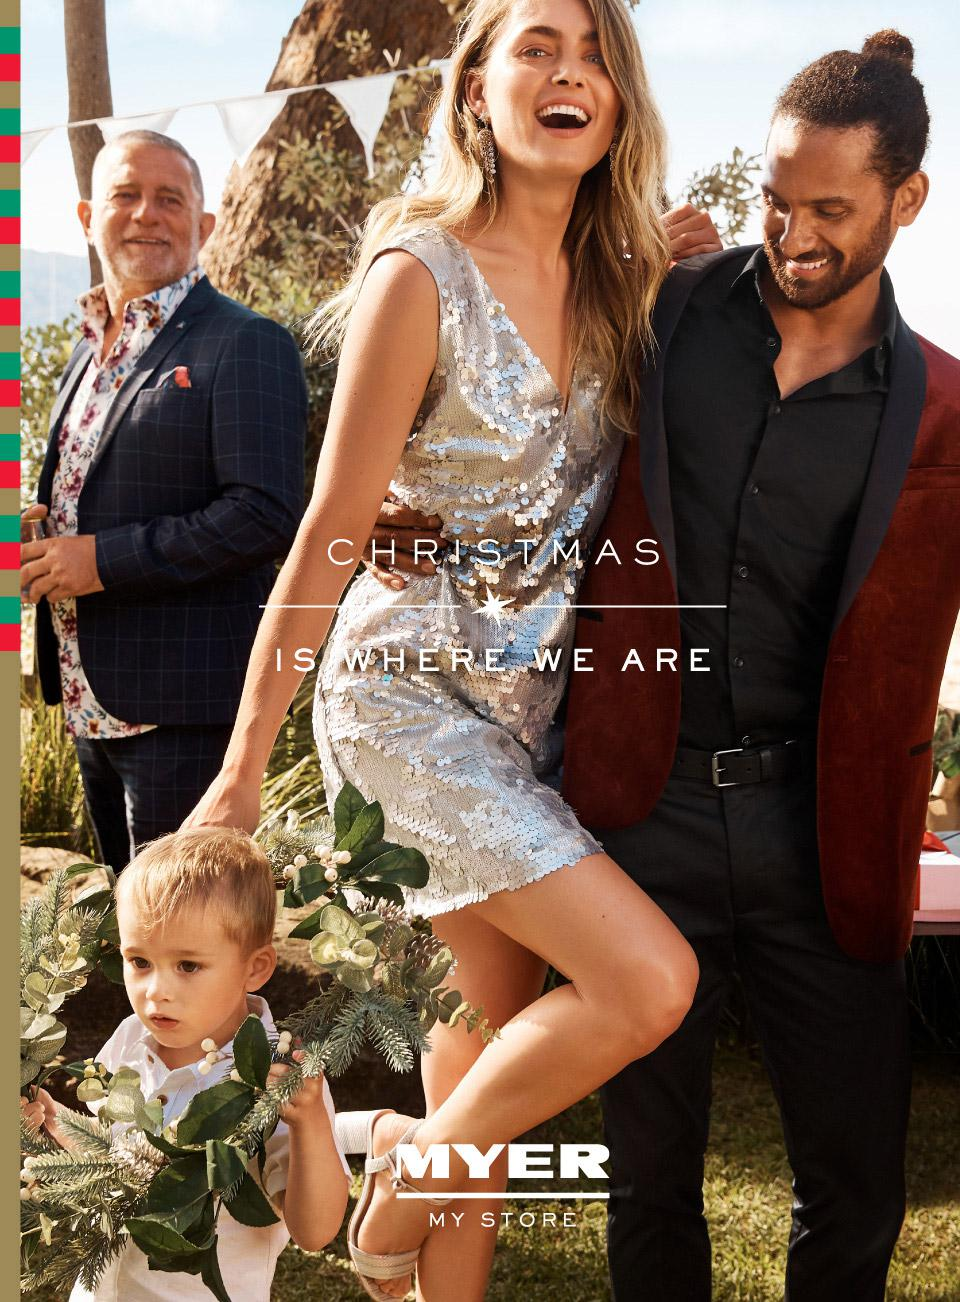 Myer Catalogue 9 November - 24 December 2019. Christmas Is Where We Are!